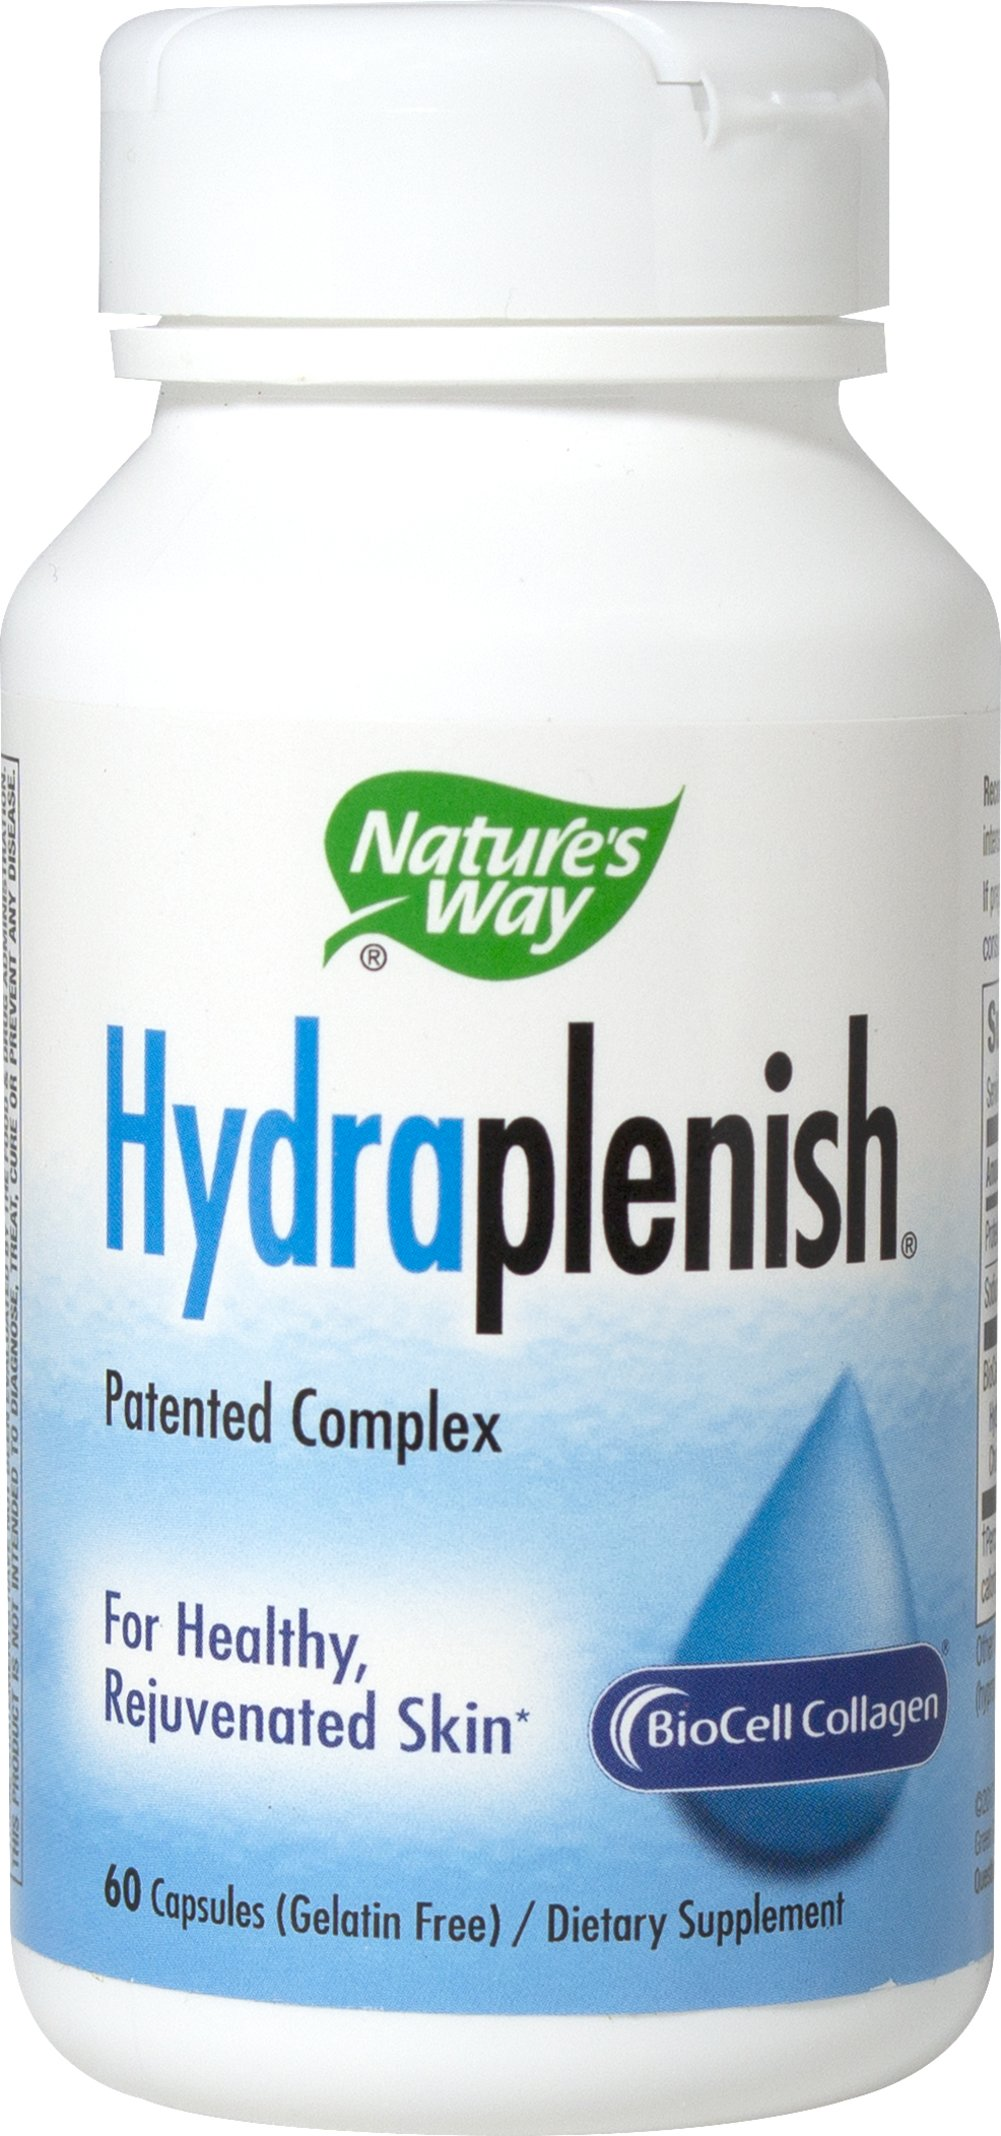 Hydraplenish® Hyaluronic Acid Complex <p><strong>From the Manufacturer's Label:</strong><br /><br />Hyaluronic Acid<br />Patented Complex<br />Superior Absorption<br /><br />Internal Moisturizer for Skin & Joints**<br />Moisturizes & rejuvenates skin**<br />Lubricates & cushions joints**<br /><br />Hydraplenish® contains the patented BioCell Collagen® complex for healthy conne